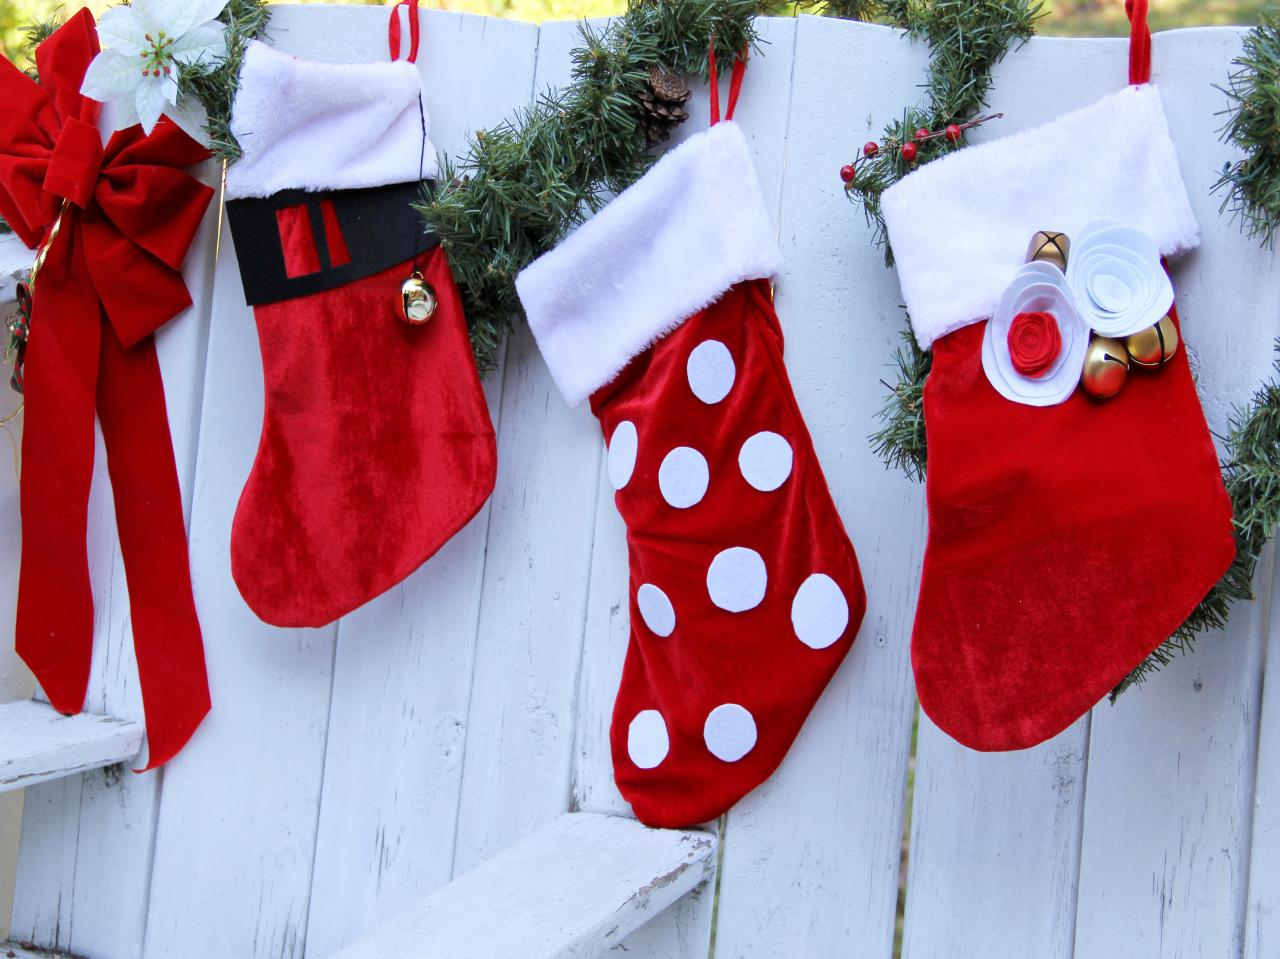 40 Wonderful Christmas Stockings Decoration Ideas All About Christmas